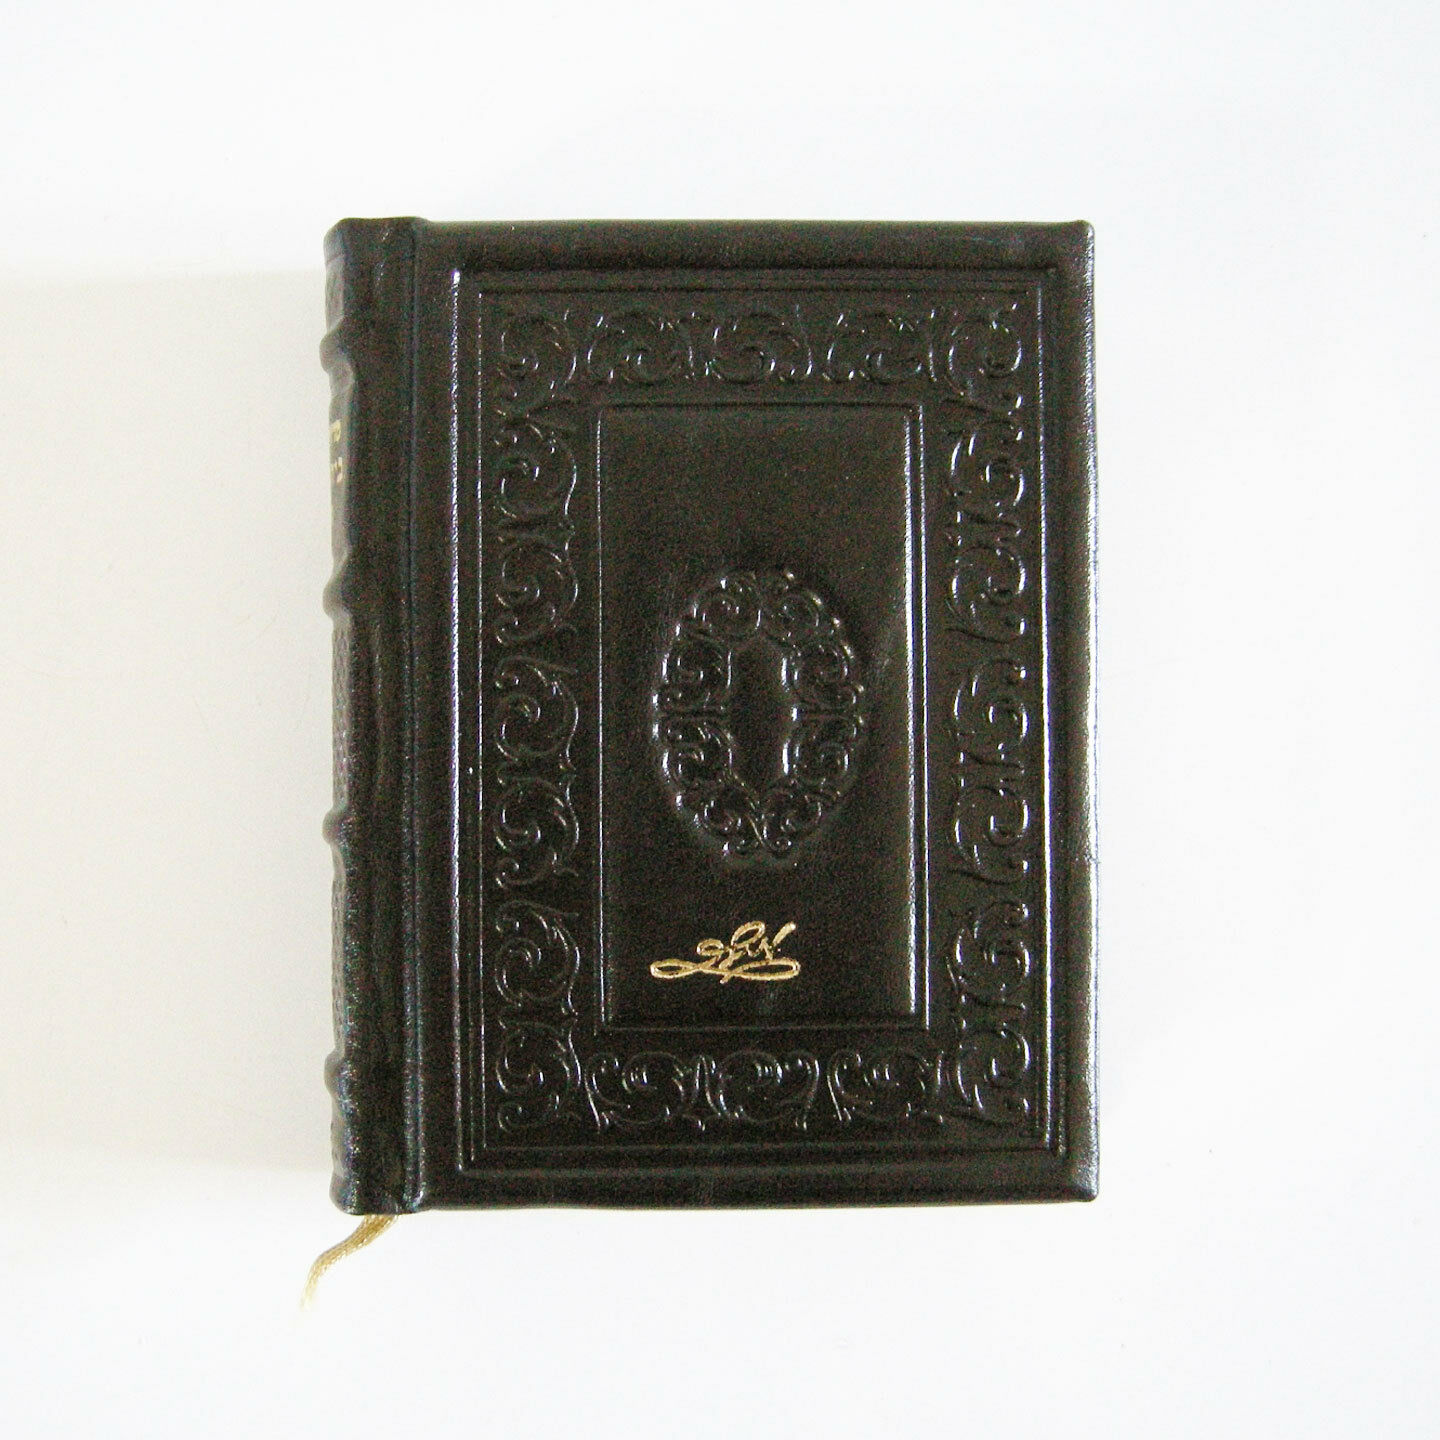 Genuine Leather-Bound Pocket Siddur Gilded Pages Hebrew Handmade Miller Israel (מוכר מישראל) 7